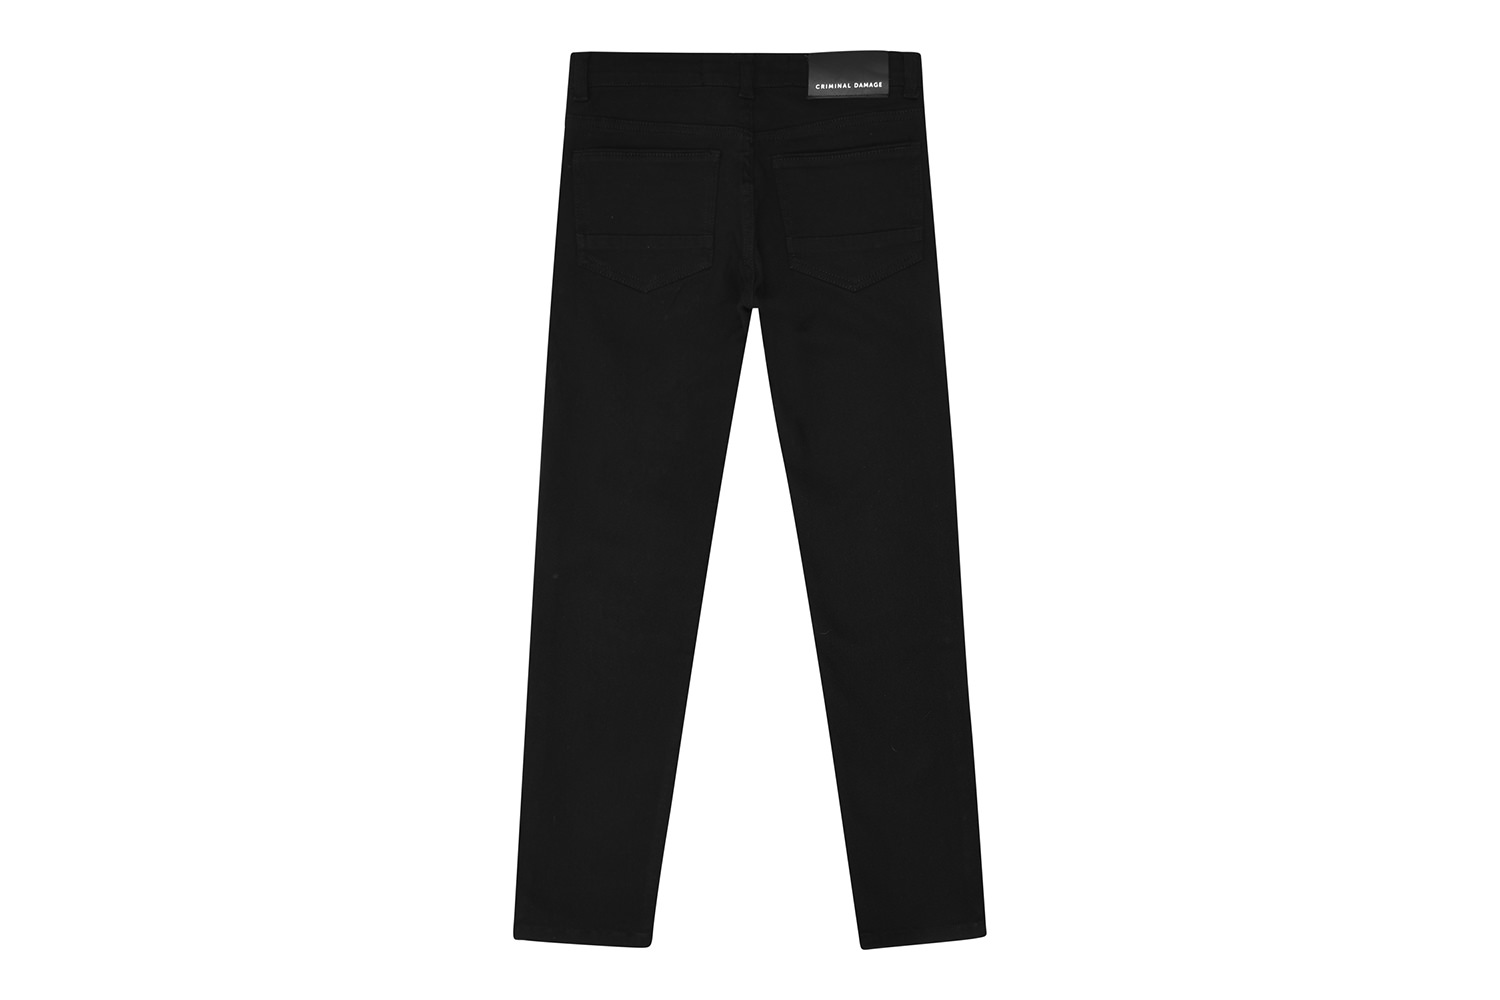 Trousers-ecommerce-Flay-lay-photography-london